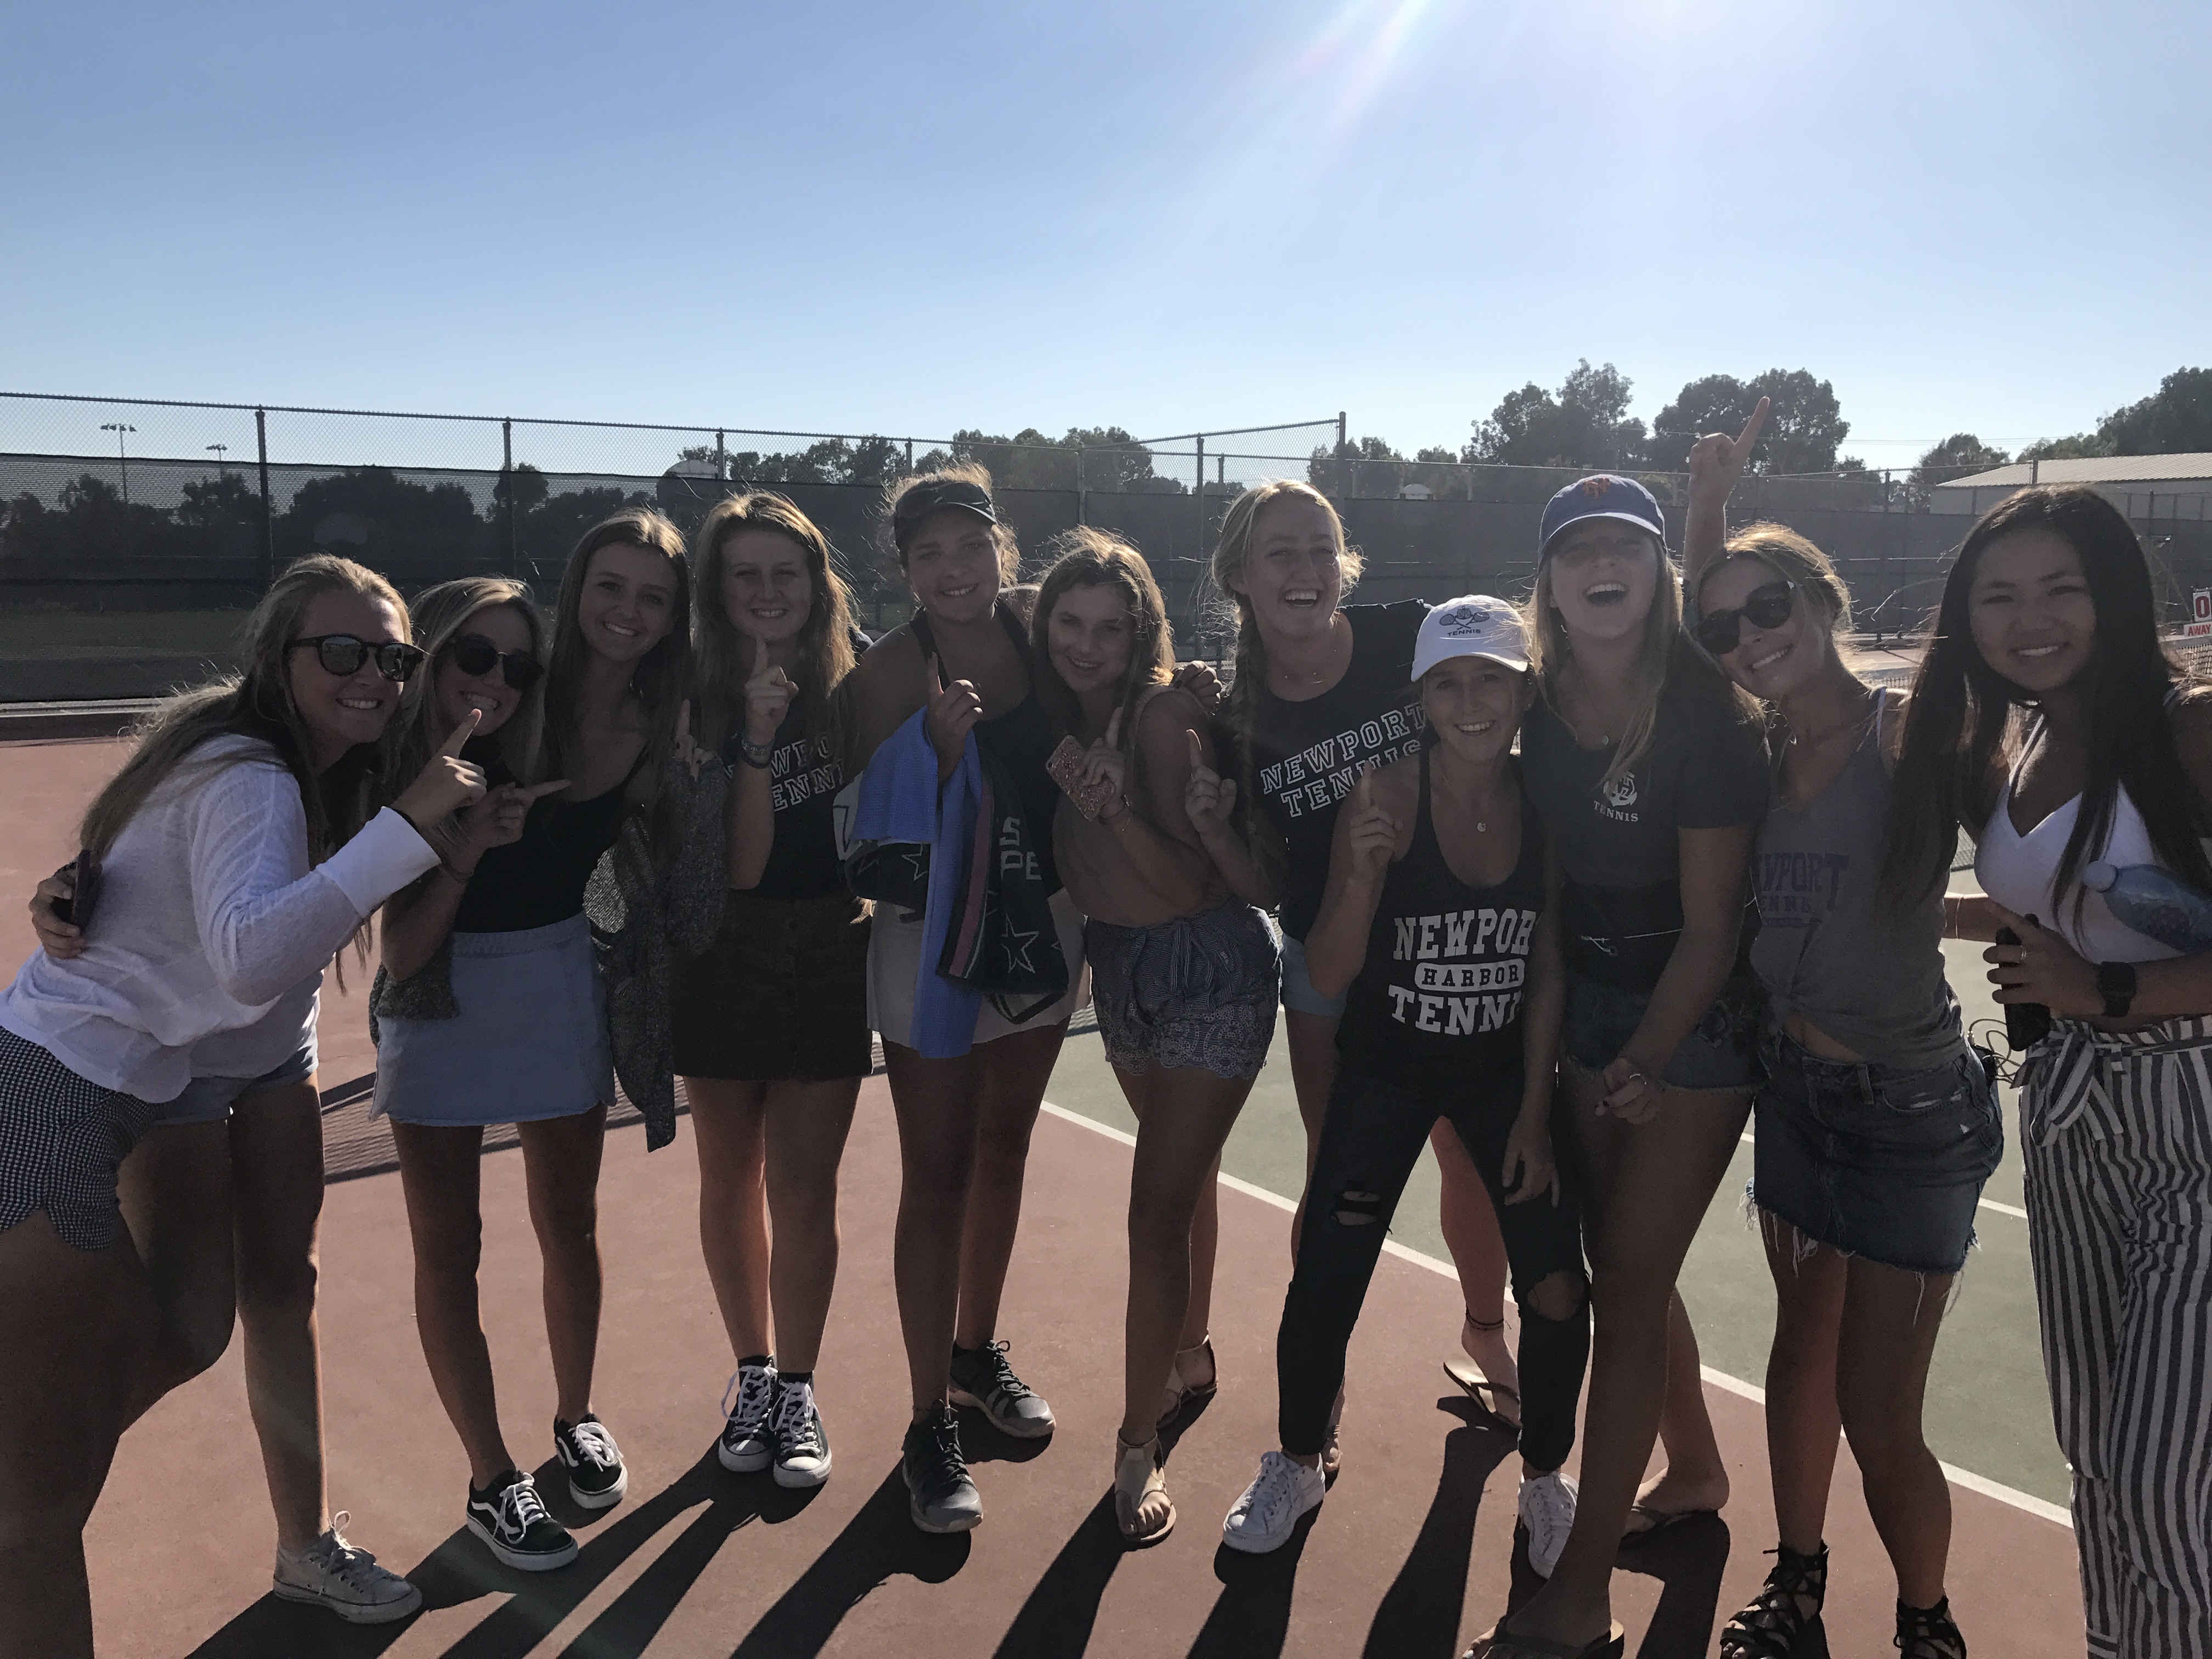 Nicole Knickerbocker is the 2017 Sunset League Singles Champion and finishes  regular season play at 55-3! SO GOOD Nic!